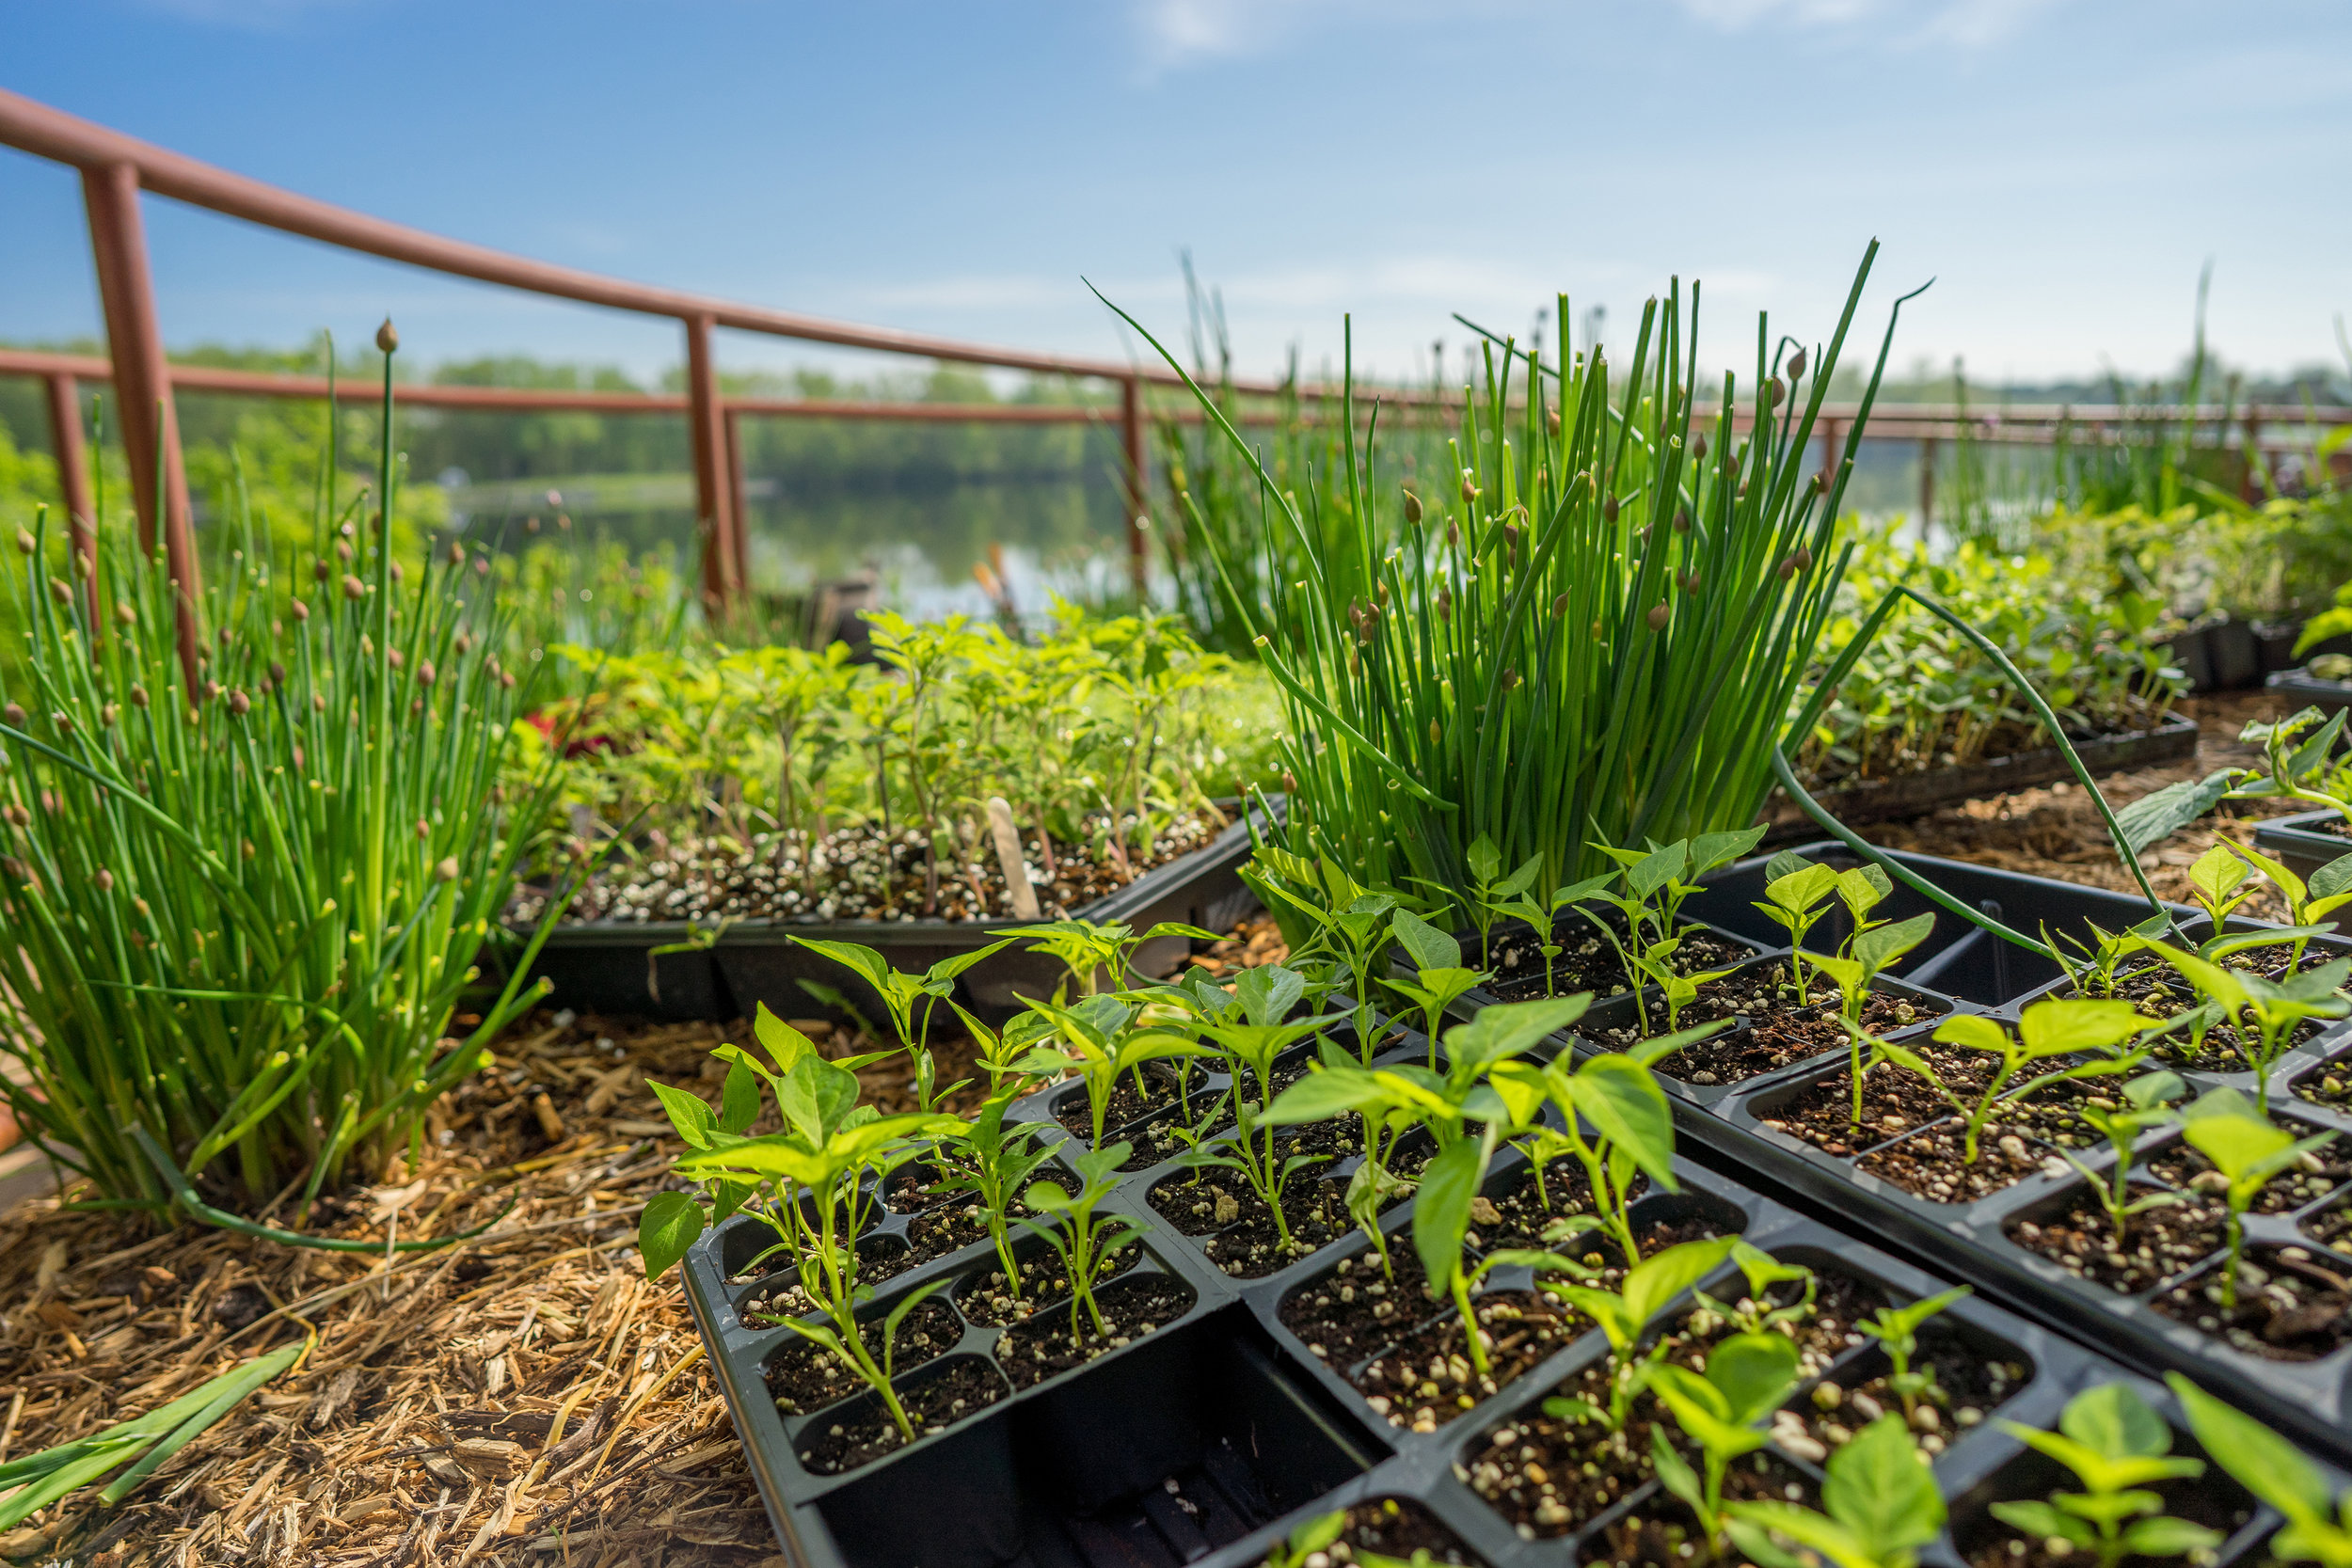 Herbs such as dill, chives, and thyme are great companion plants for repelling pests.